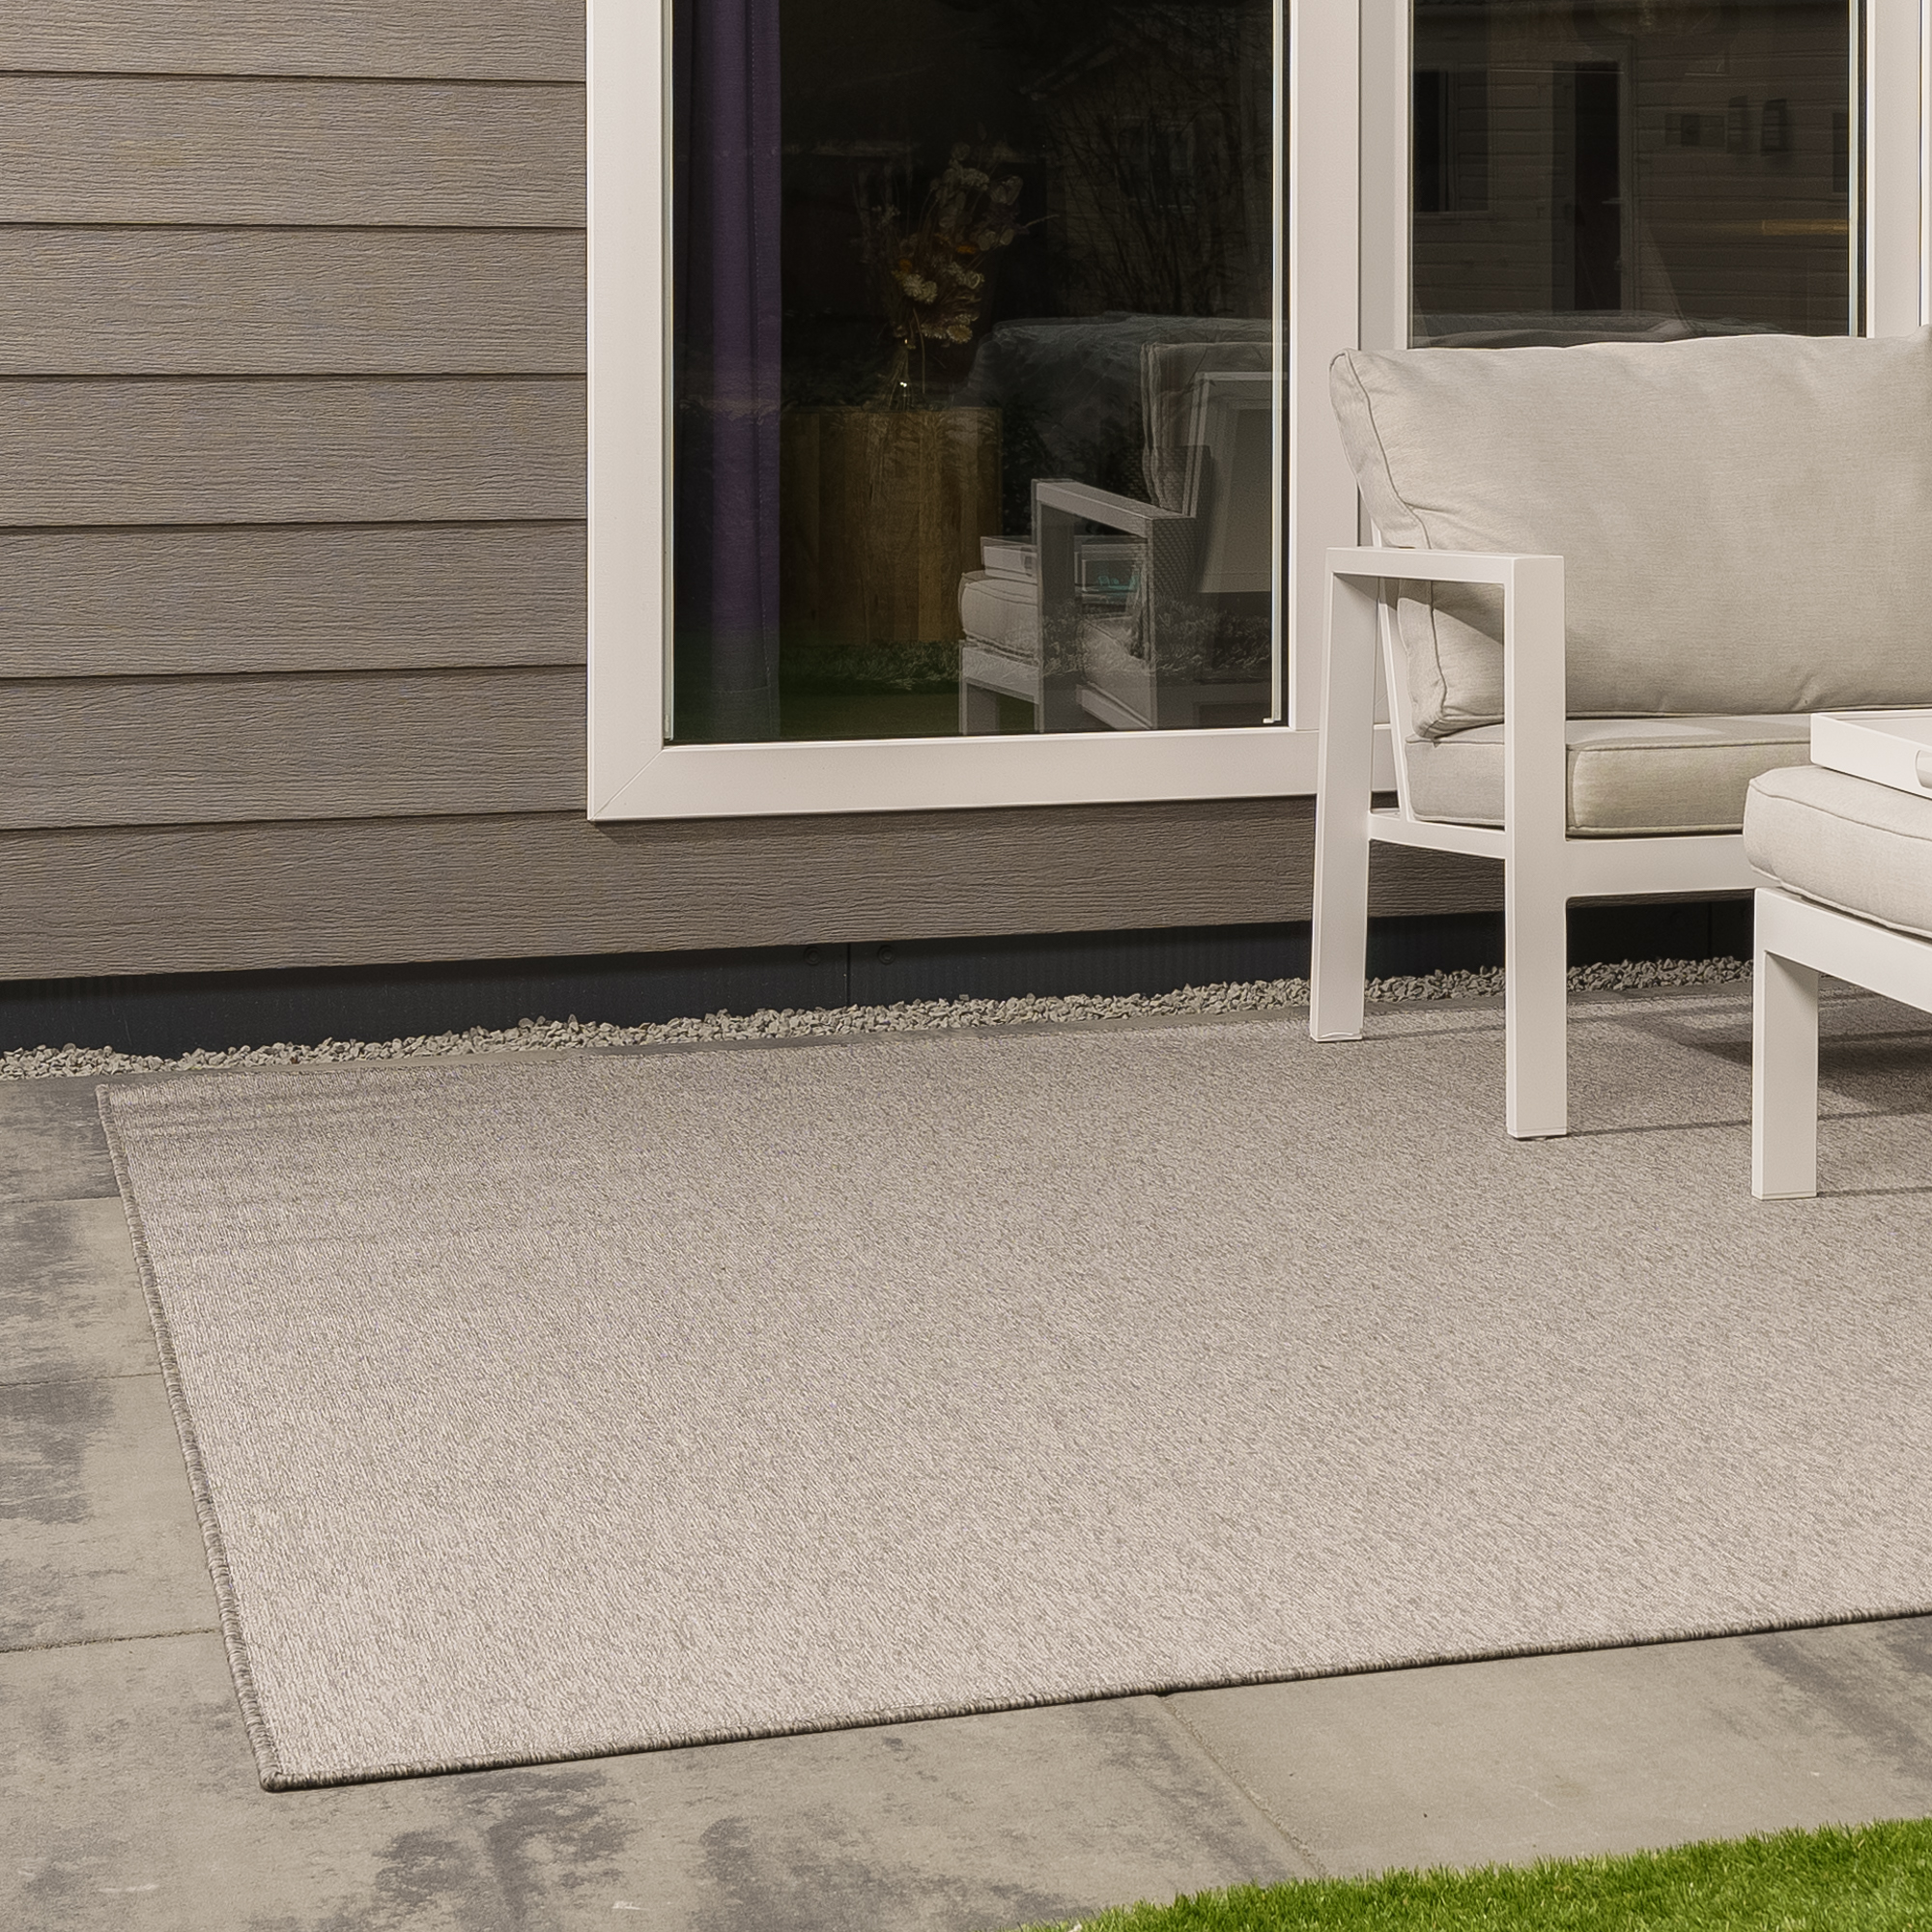 Vloerkleed Xilento Outdoor 4506-37